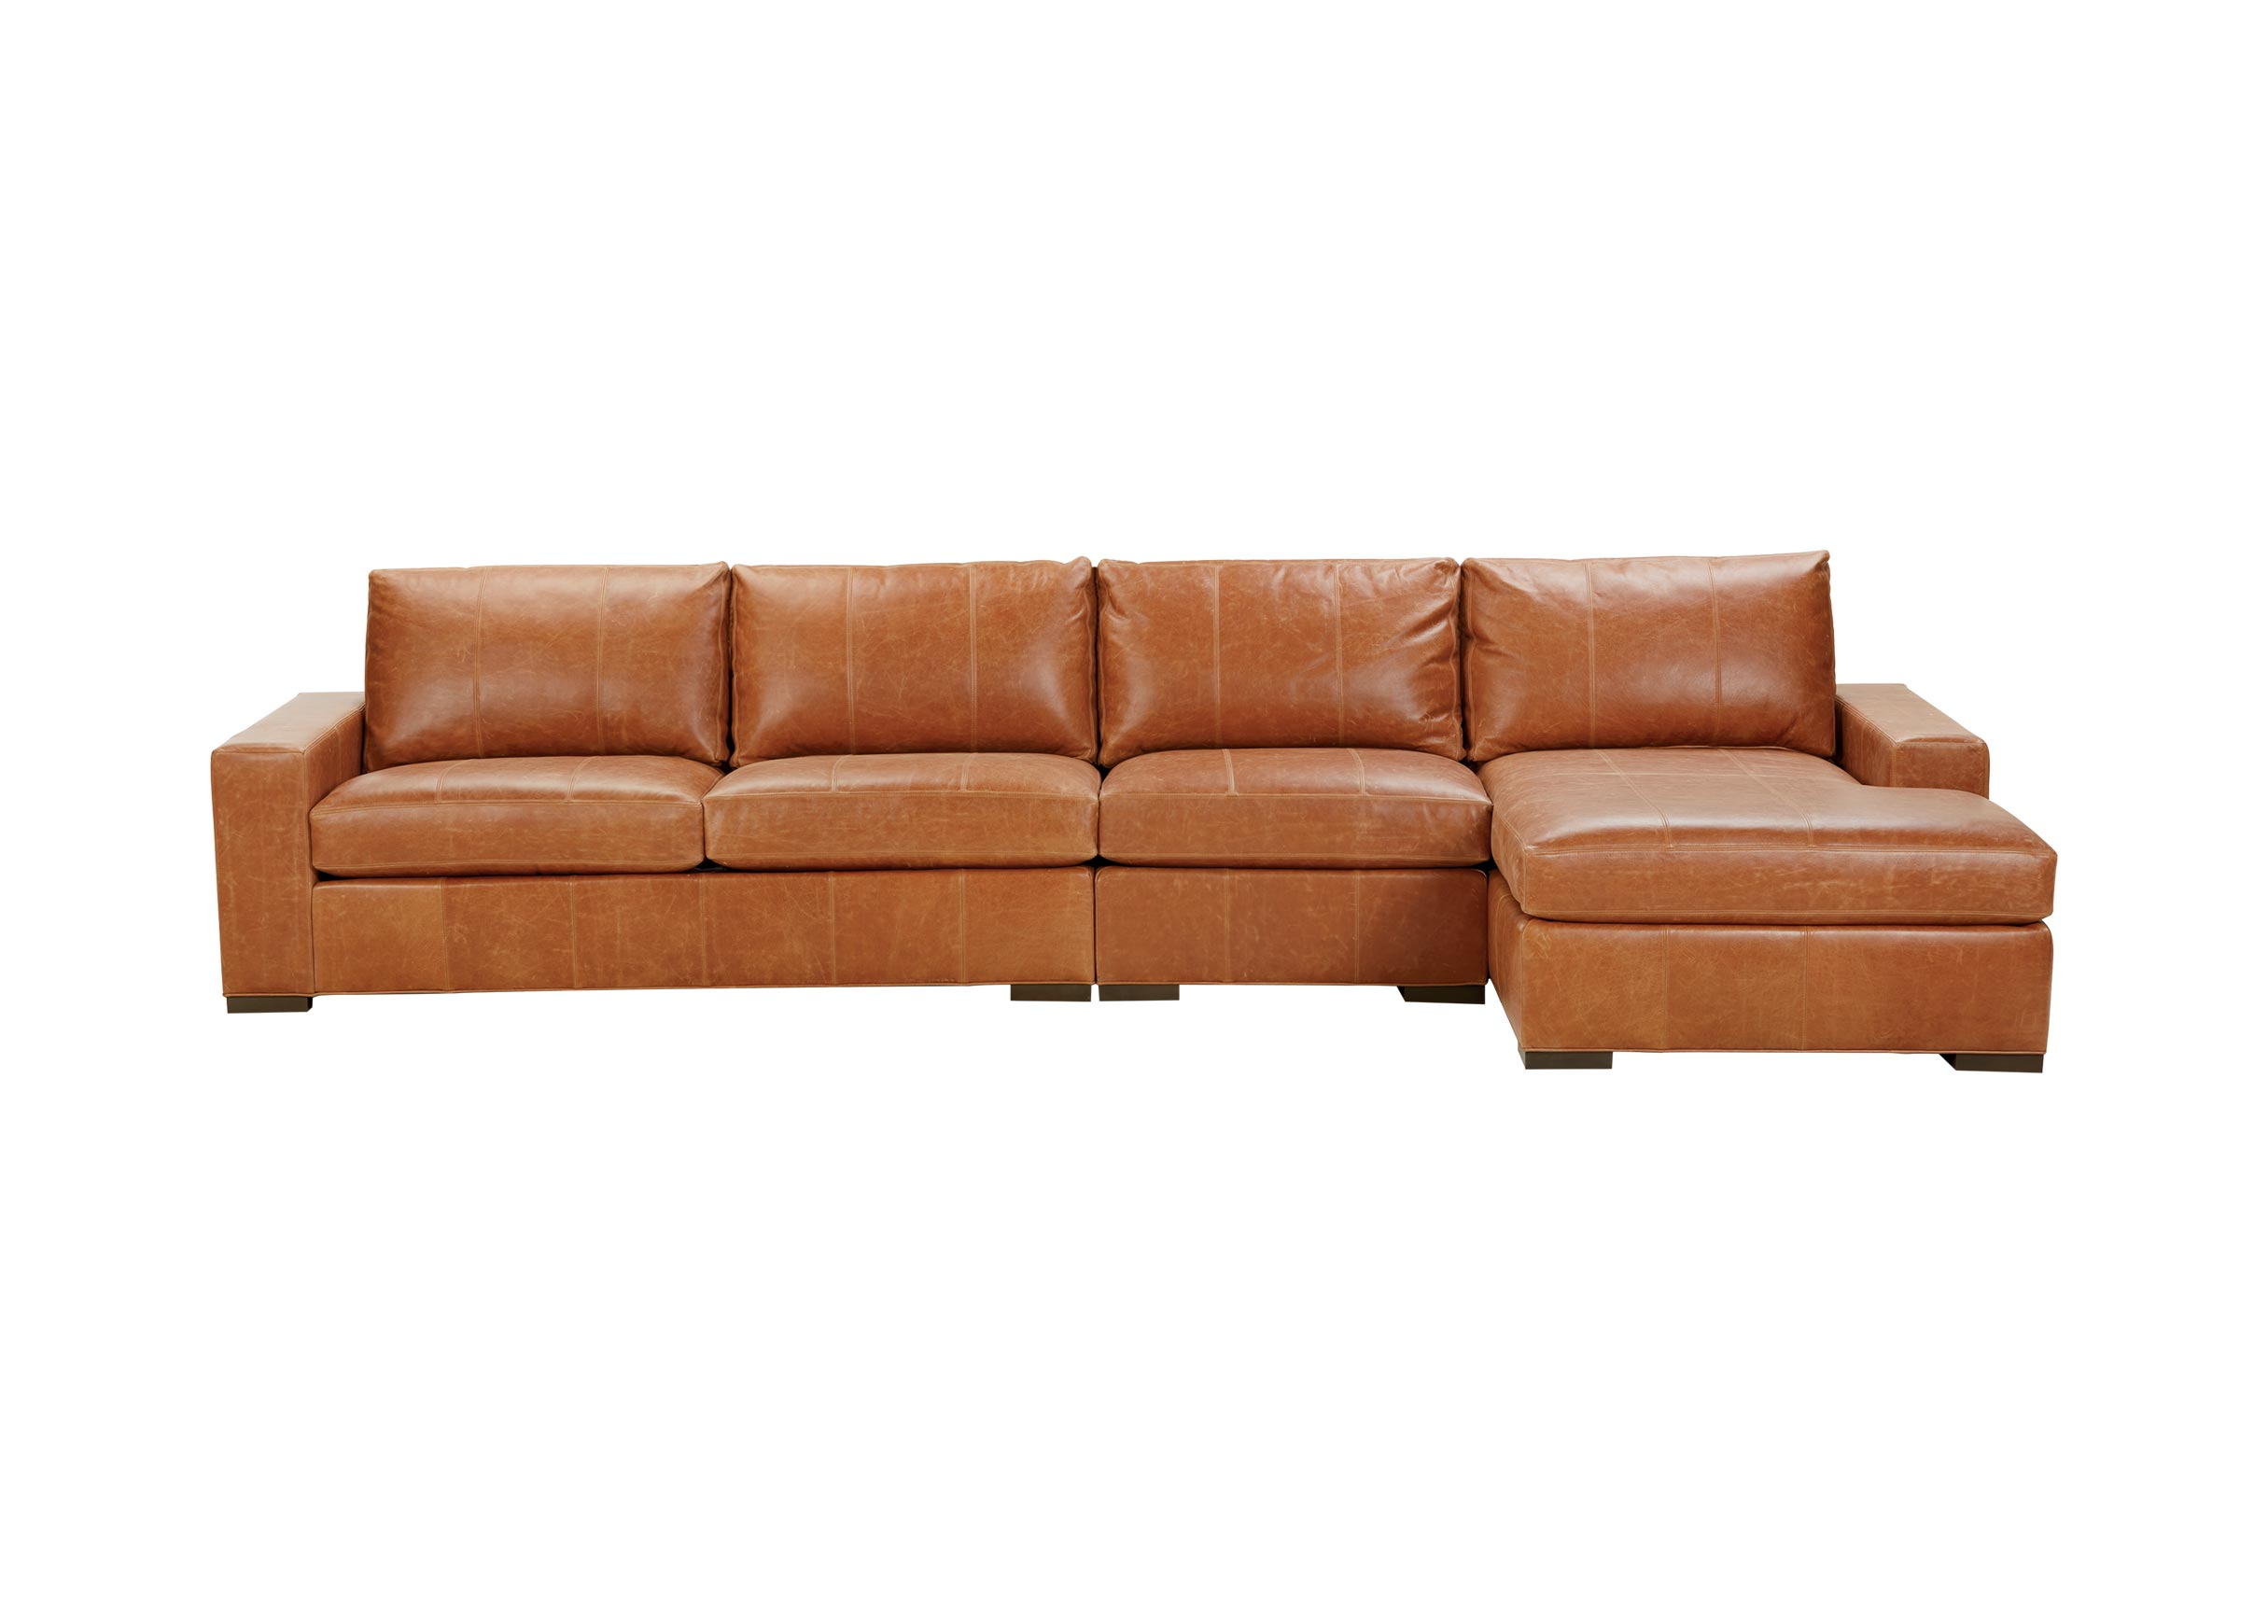 3 piece leather sectional sofa with chaise redwood city ca conway three ethan allen